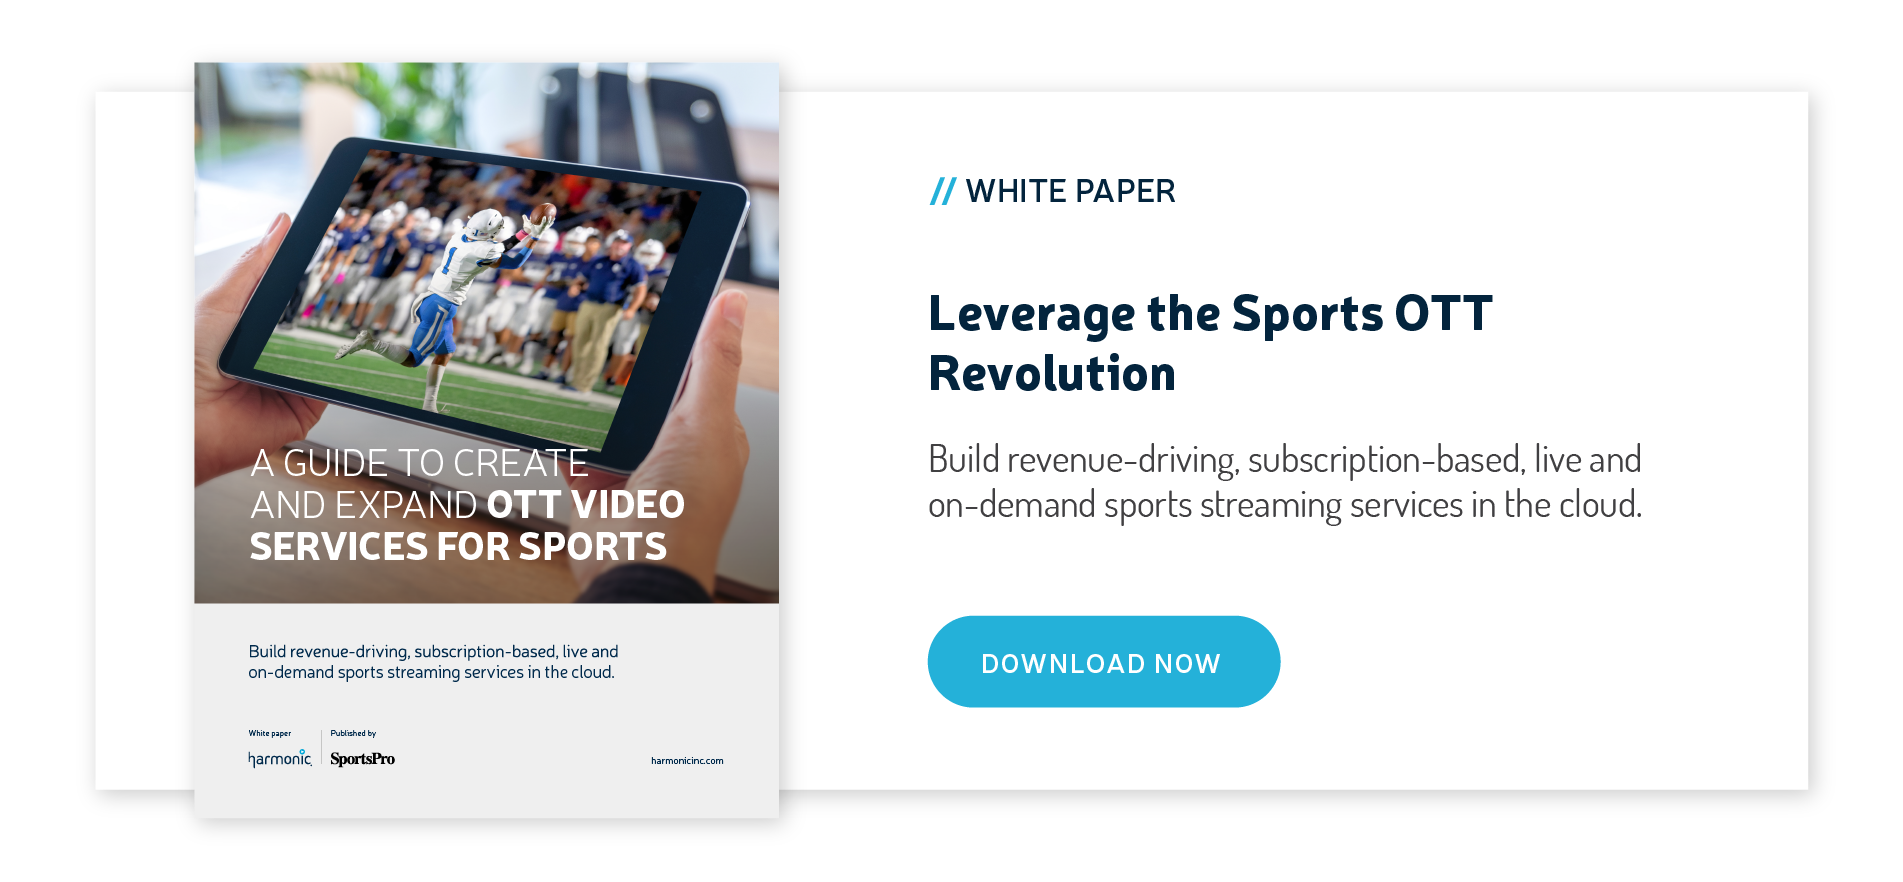 A GUIDE TO CREATE AND EXPAND OTT VIDEO SERVICES FOR SPORTS